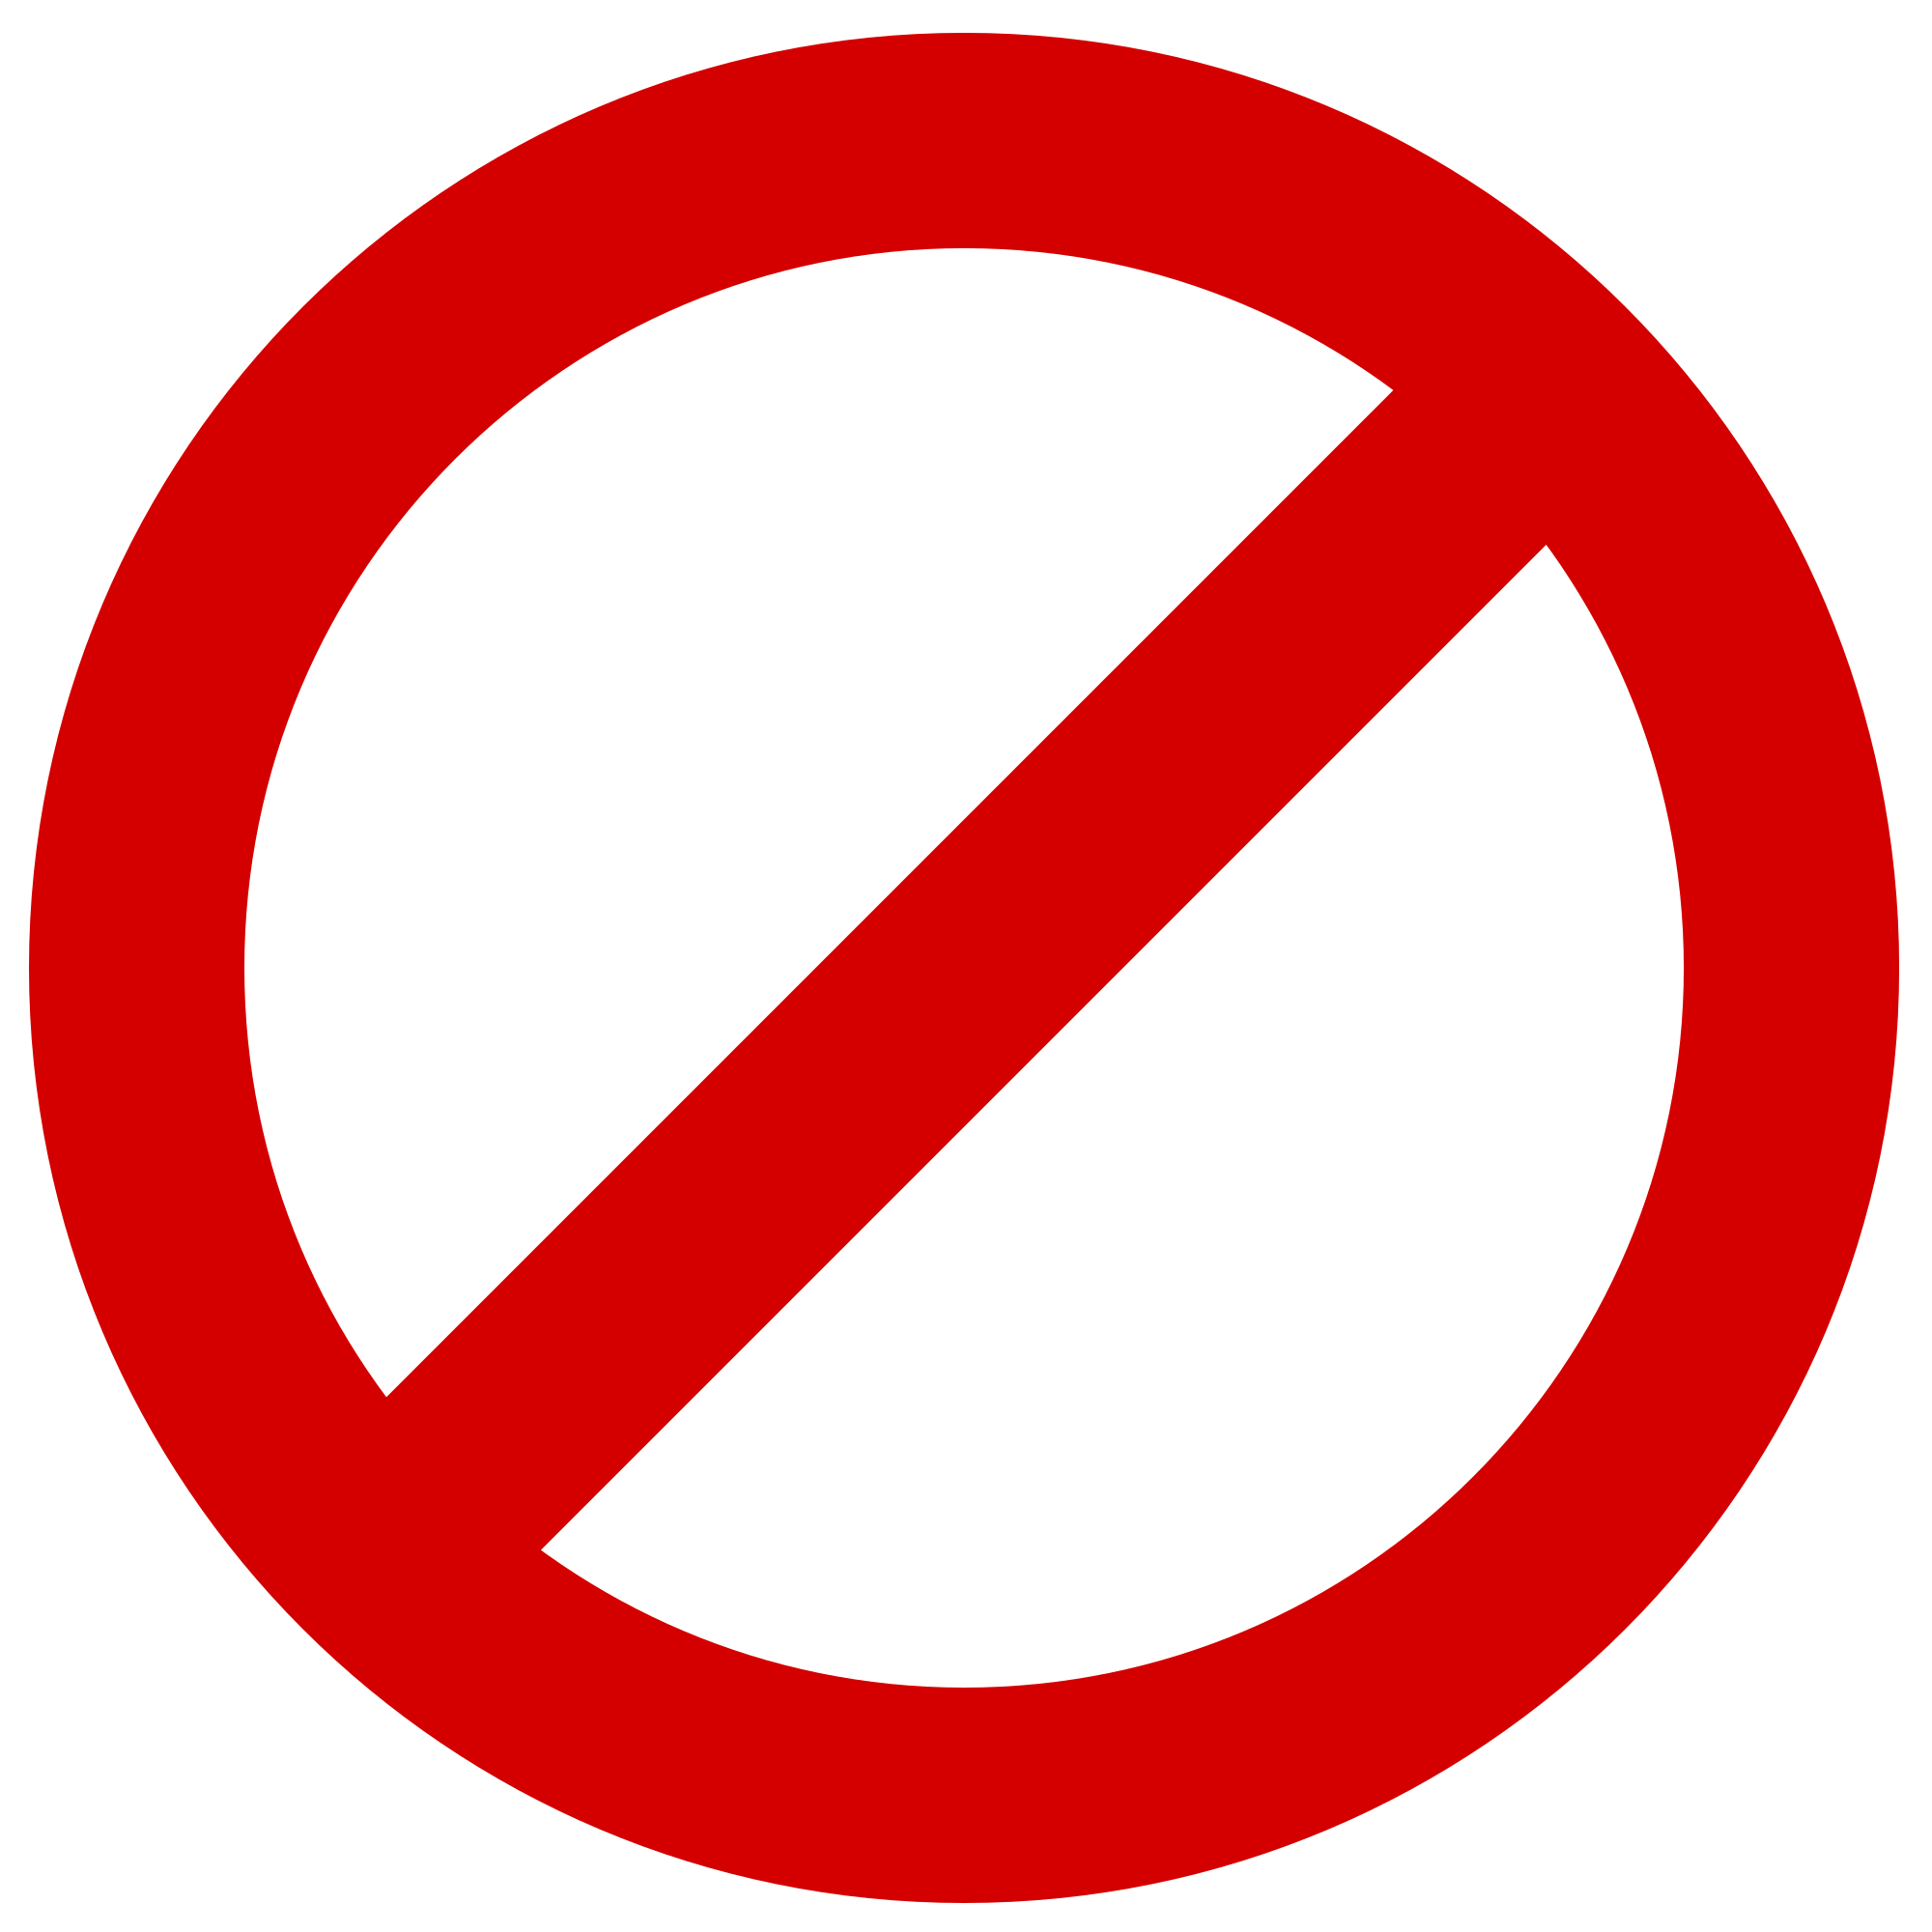 Red circle with line png. File forbidden symbol transparent